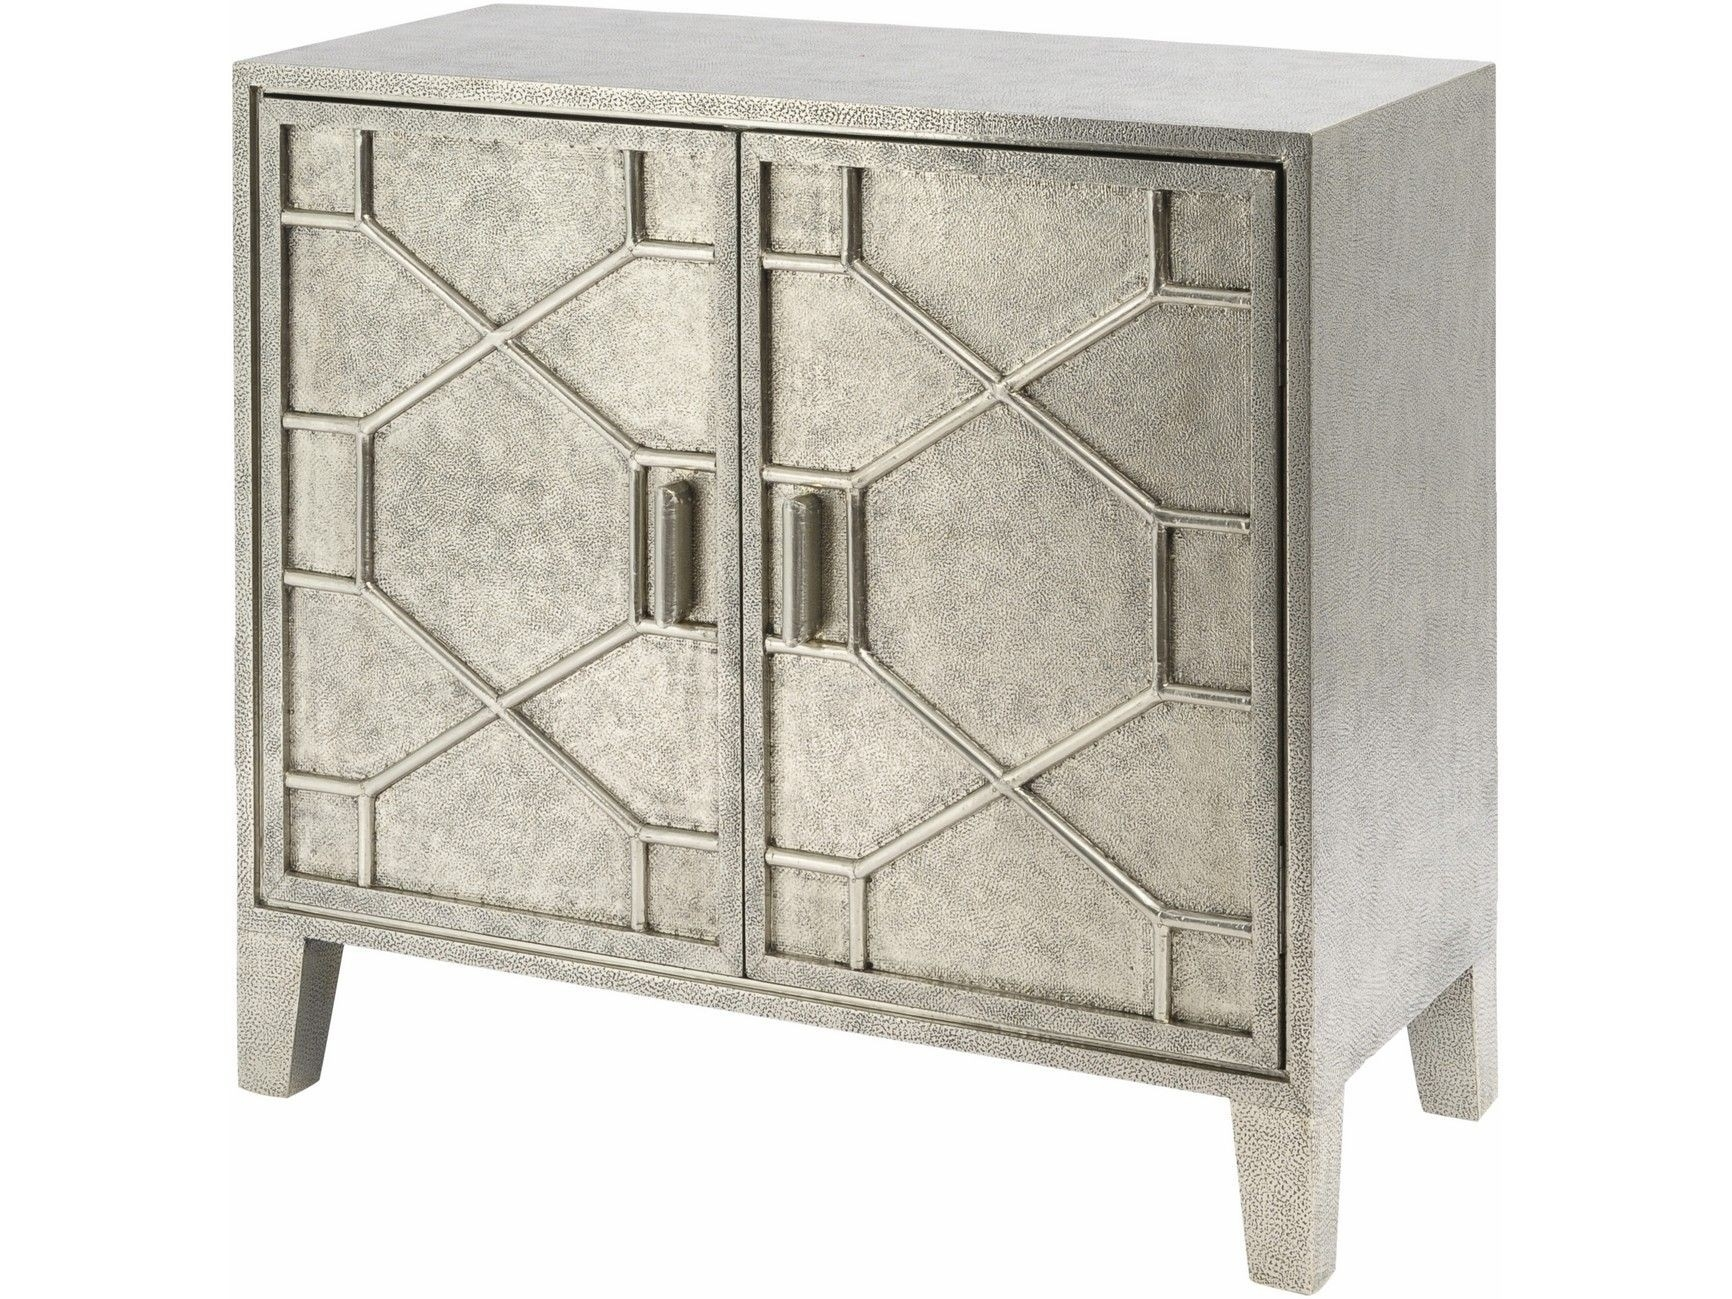 Astor Hand Embossed Metal 2 Door Cabinet | Metal Embossed Sideboards intended for Aged Mirrored 2 Door Sideboards (Image 6 of 30)